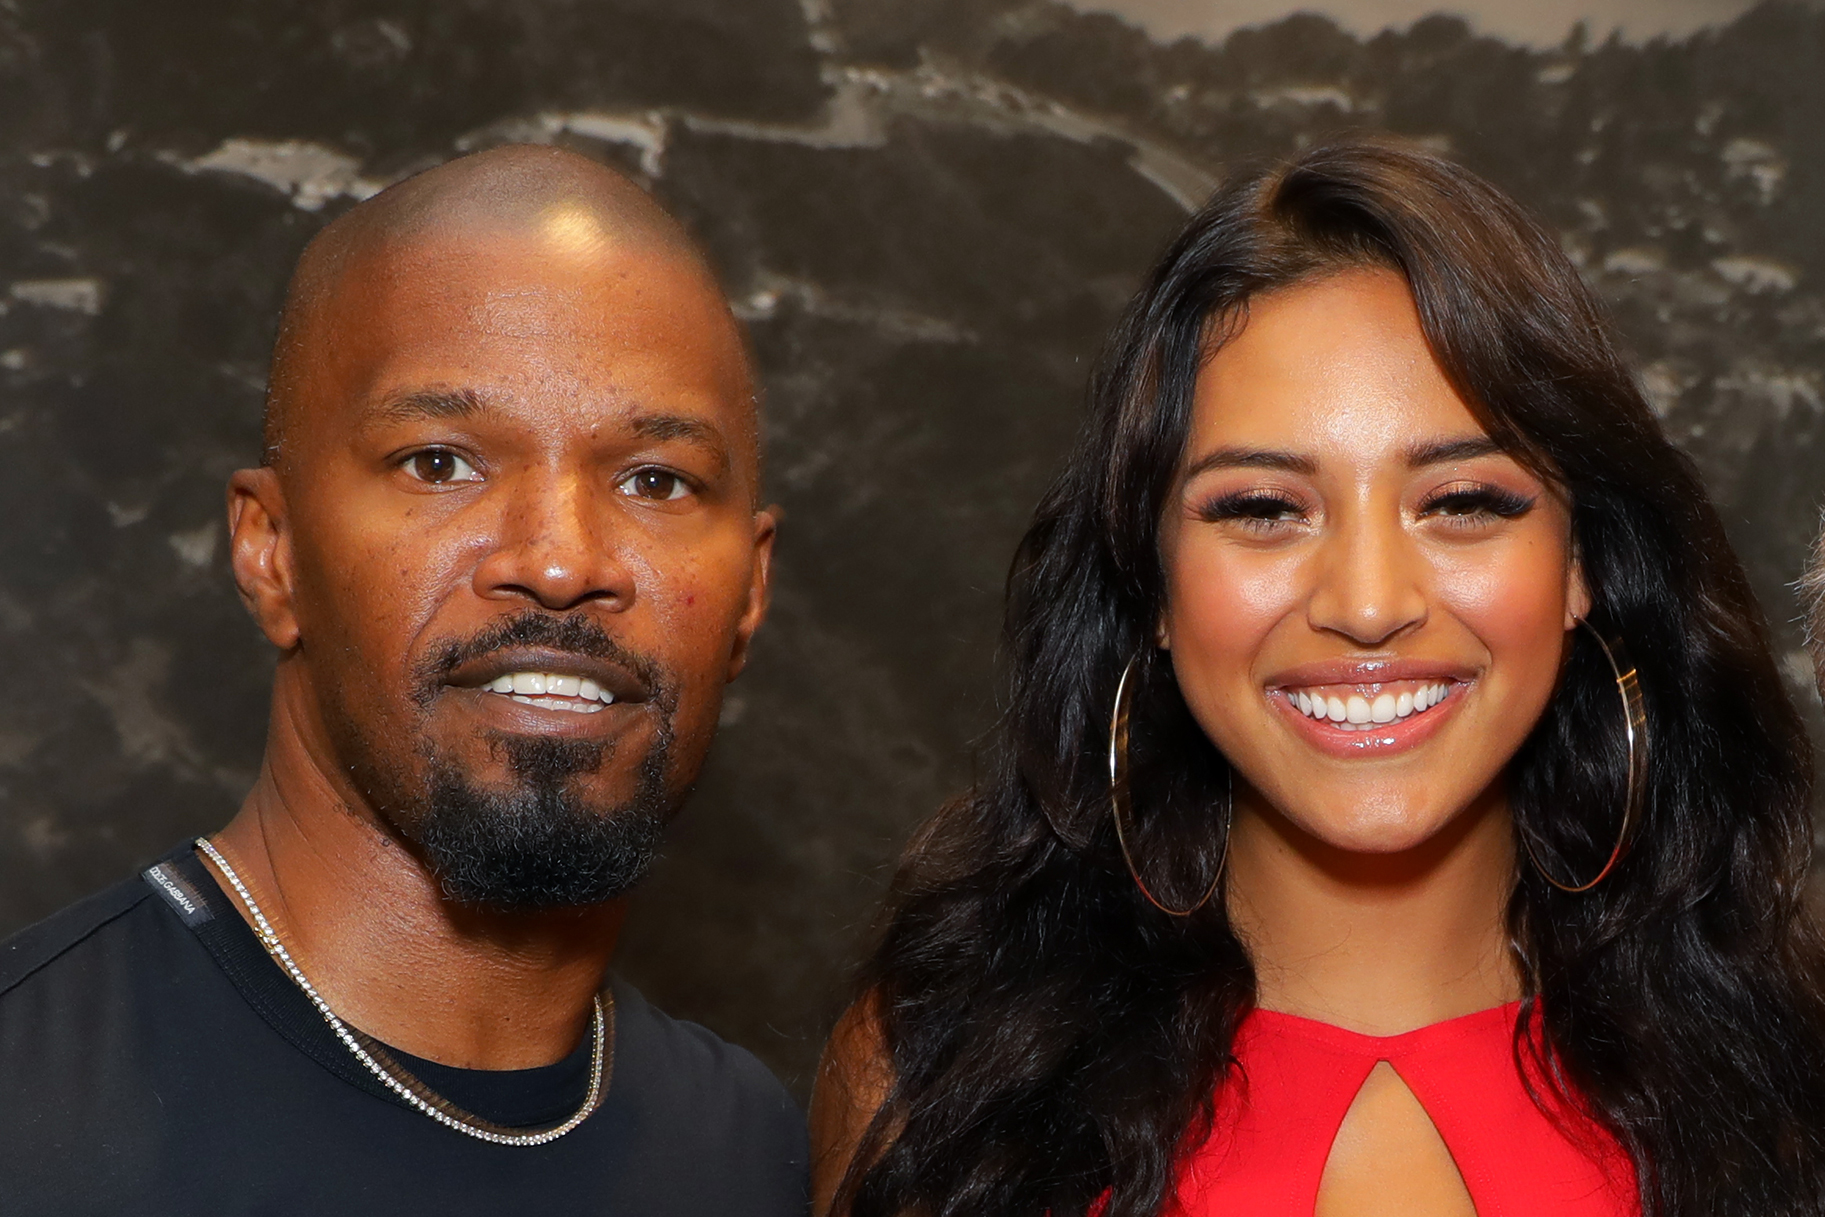 Jamie Foxx and Sela Vave